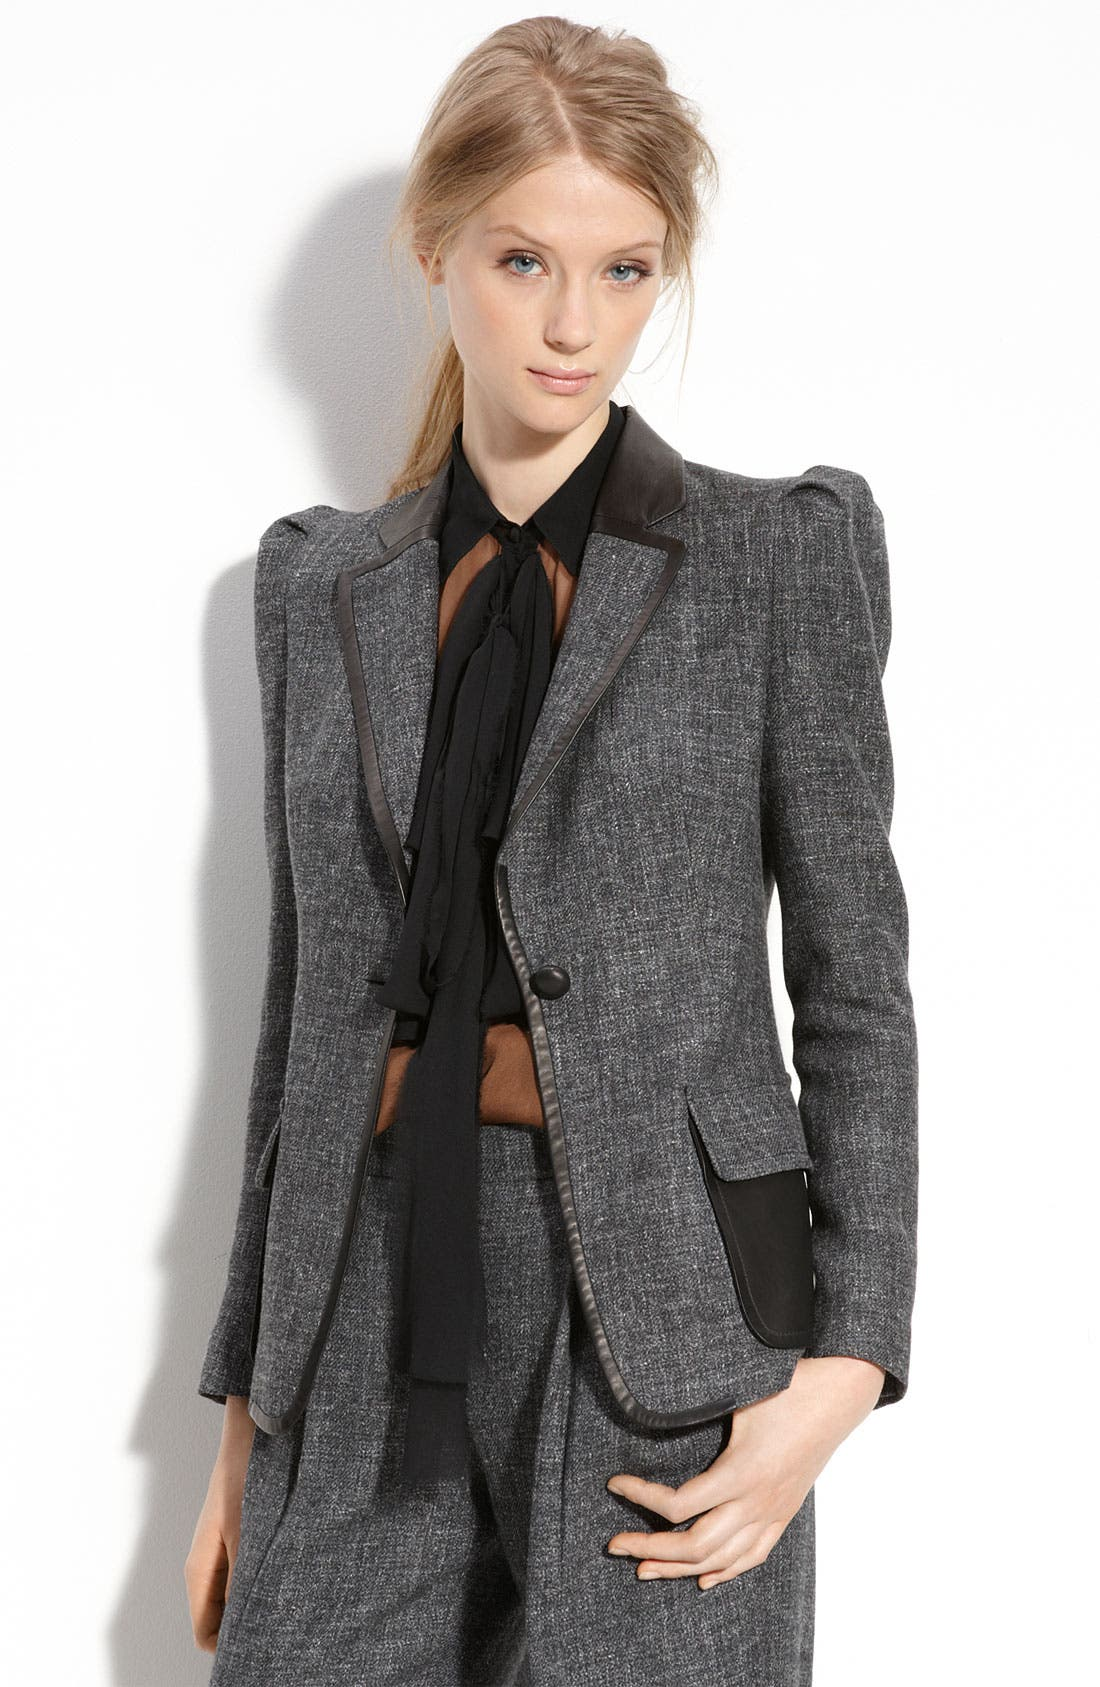 Tweed Jacket with Leather Trim,                             Main thumbnail 1, color,                             001